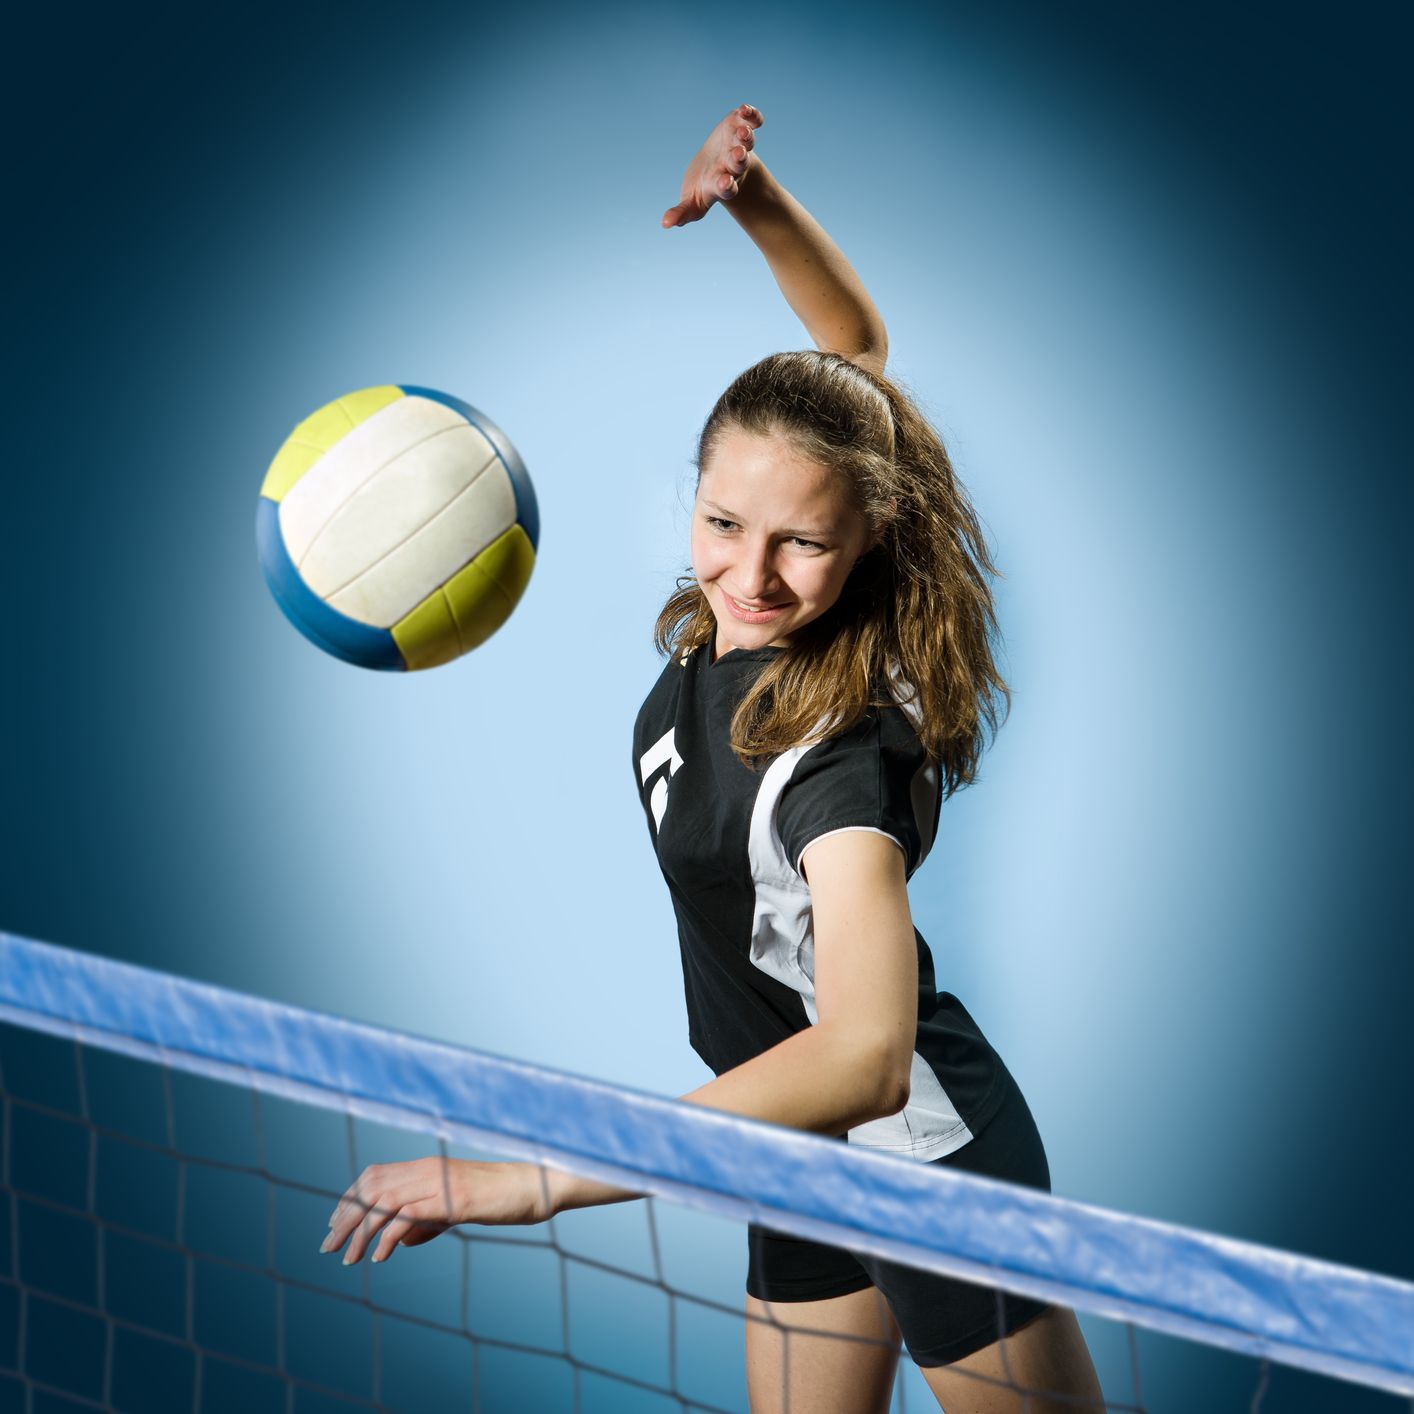 Female Volleyball Player With A Ball Photo By Val Th